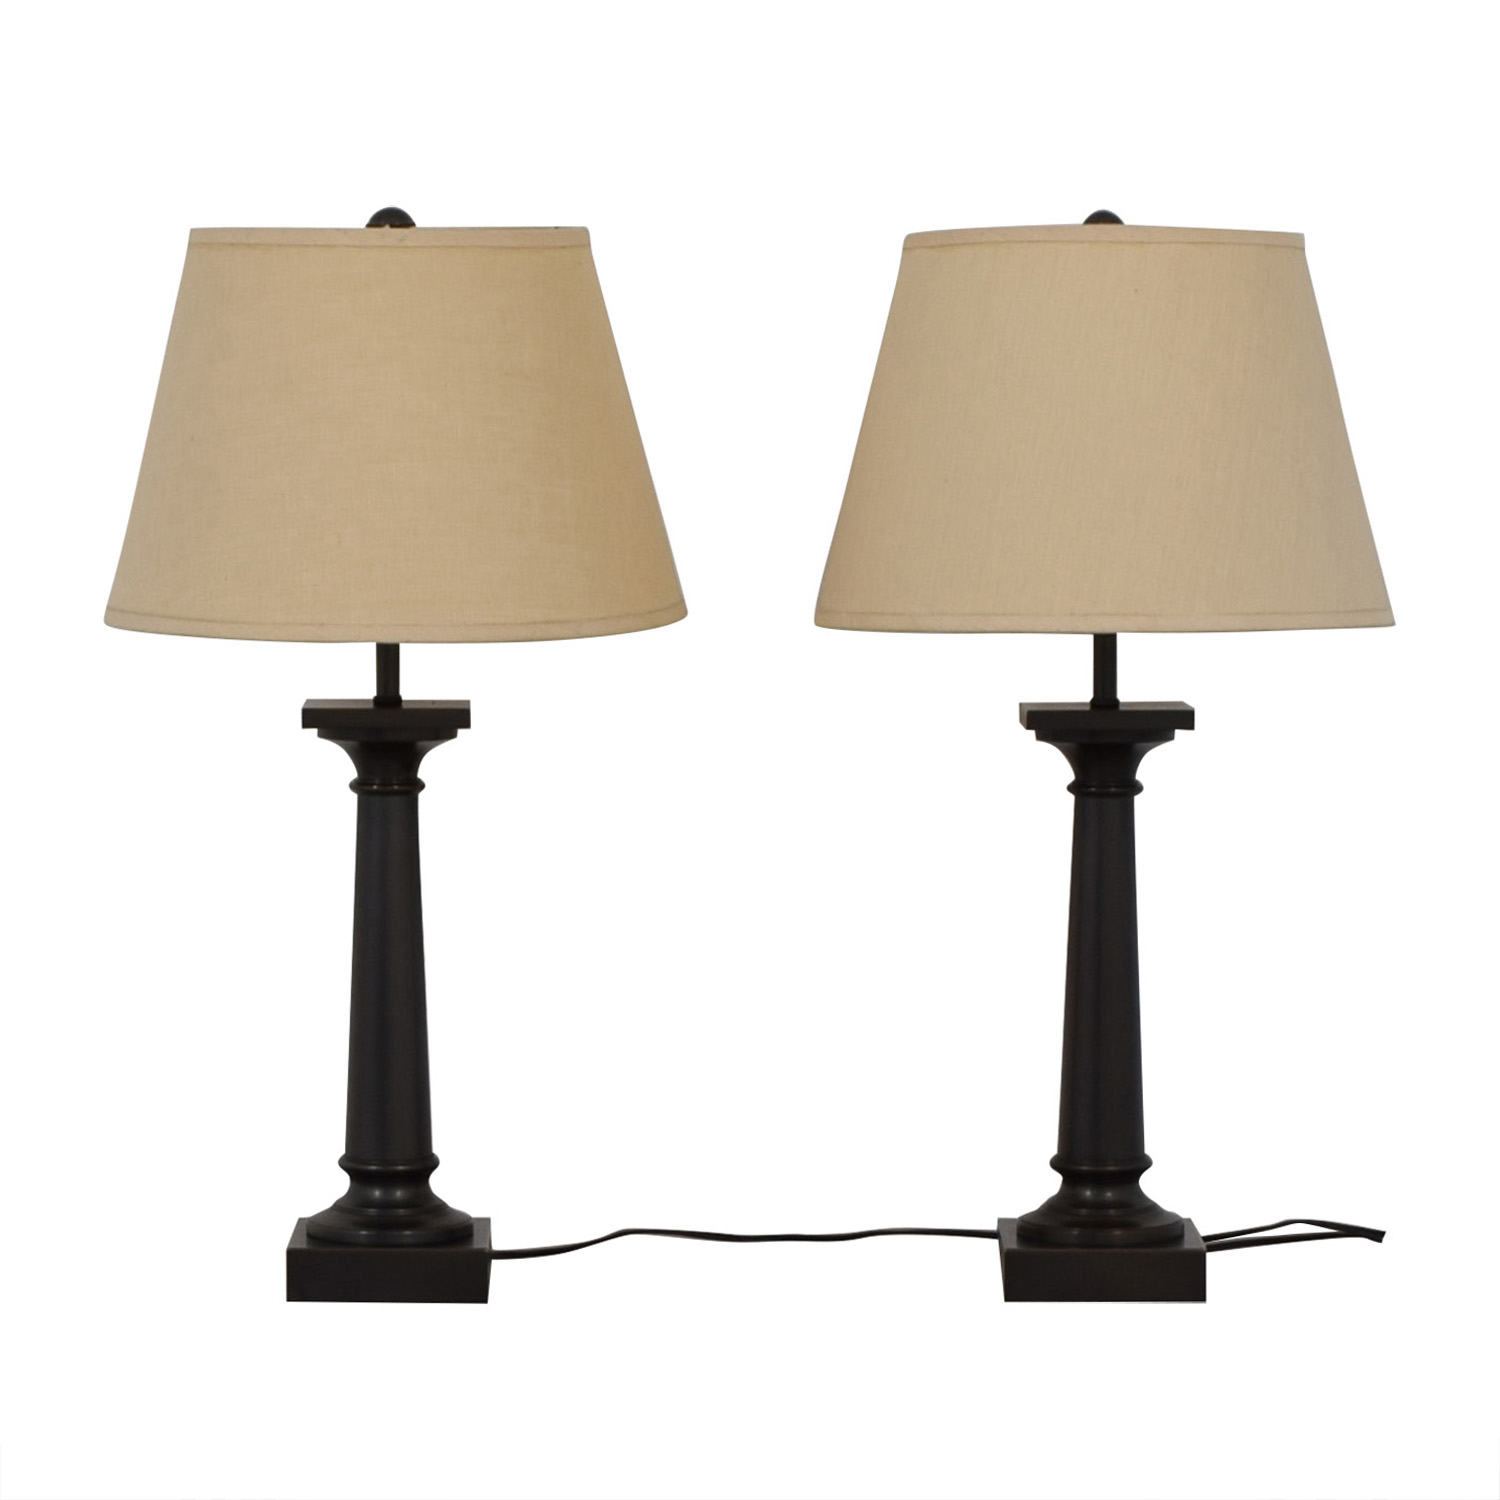 Restoration Hardware Restoration Hardware Table Lamps Set Lamps